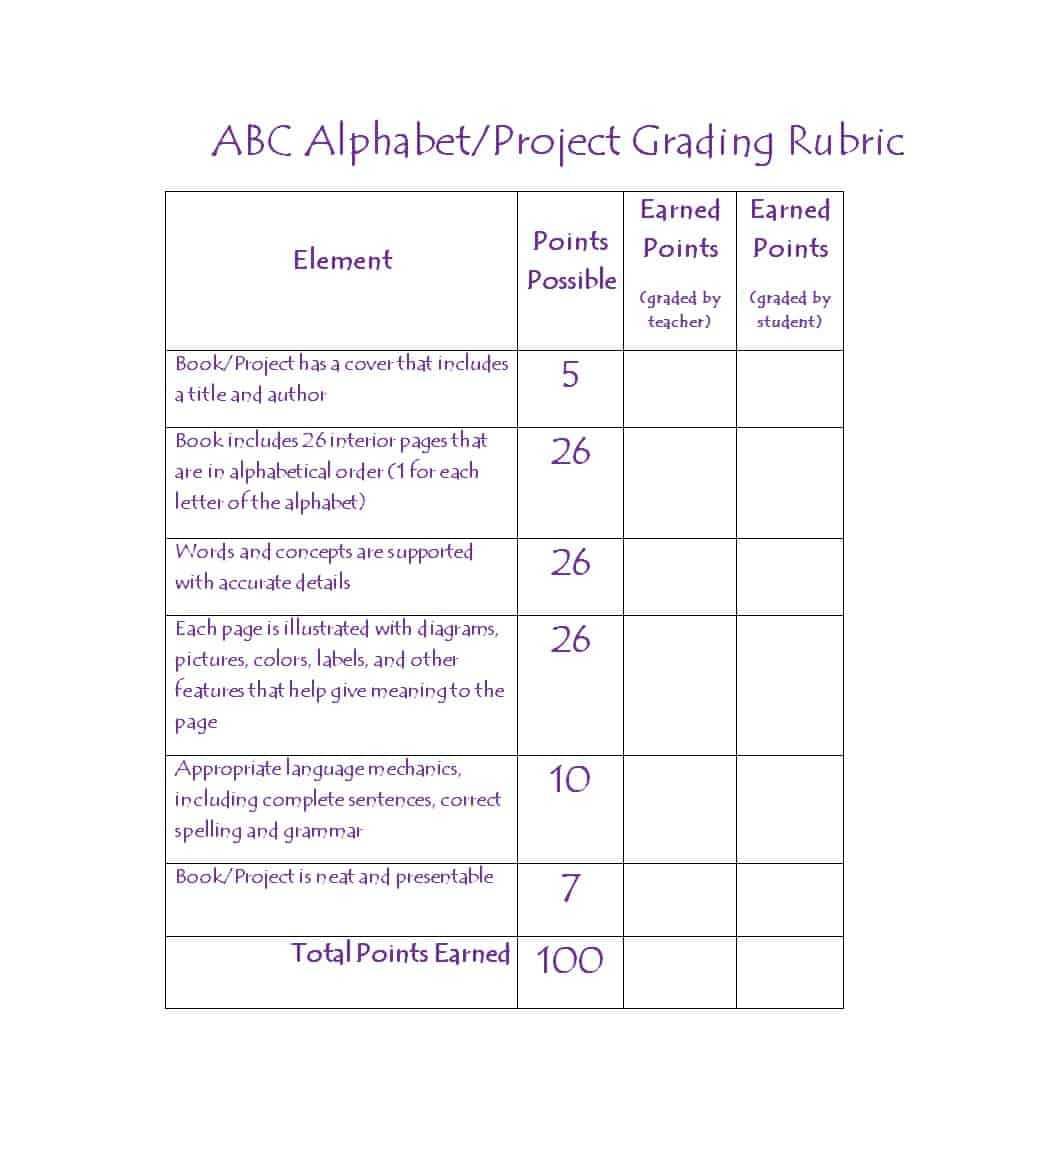 46 Editable Rubric Templates (Word Format) ᐅ Template Lab Throughout Blank Rubric Template